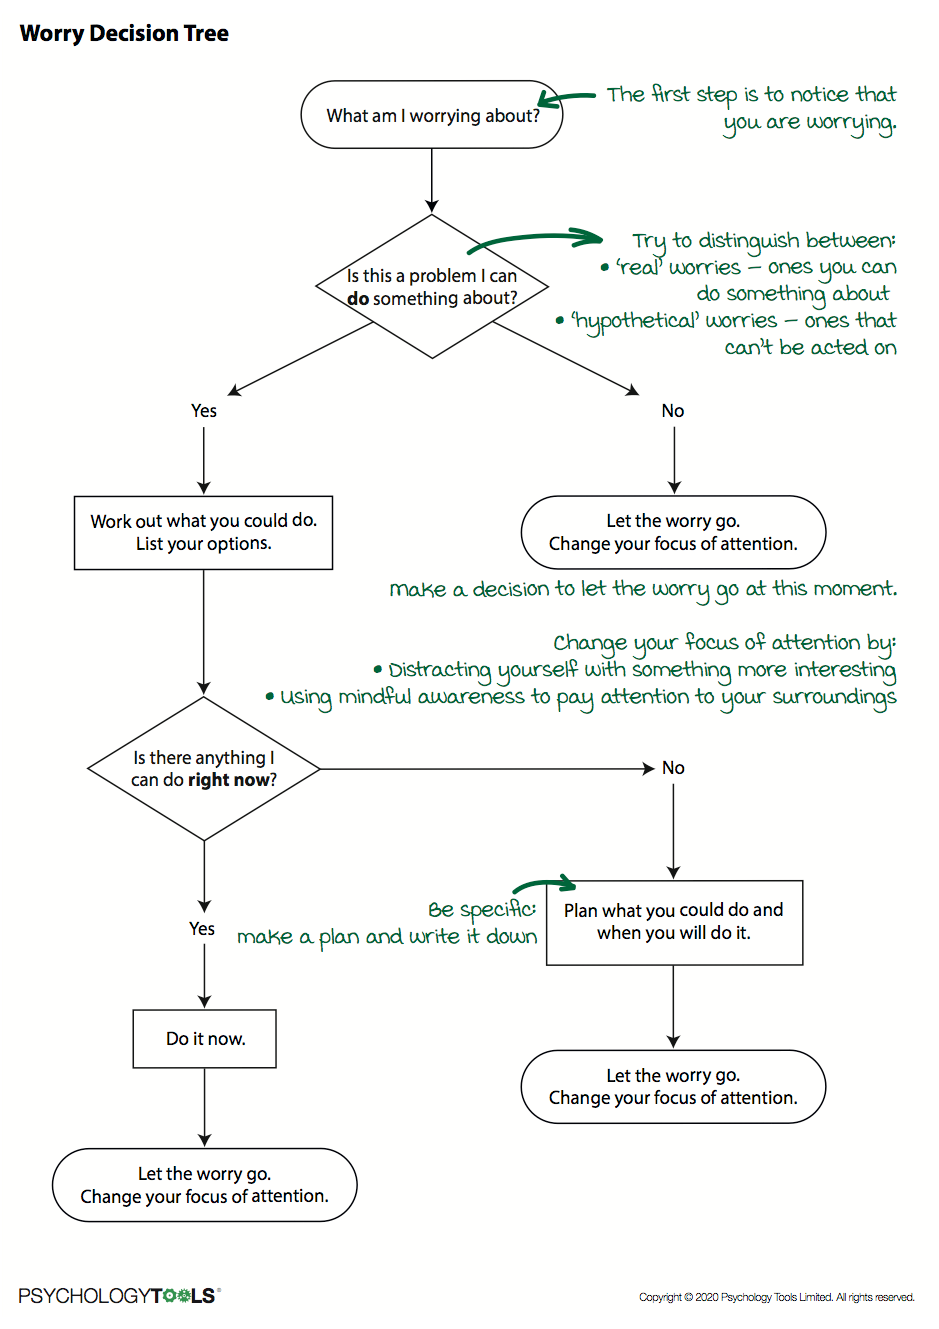 Diagram of the Worry Decision Tree